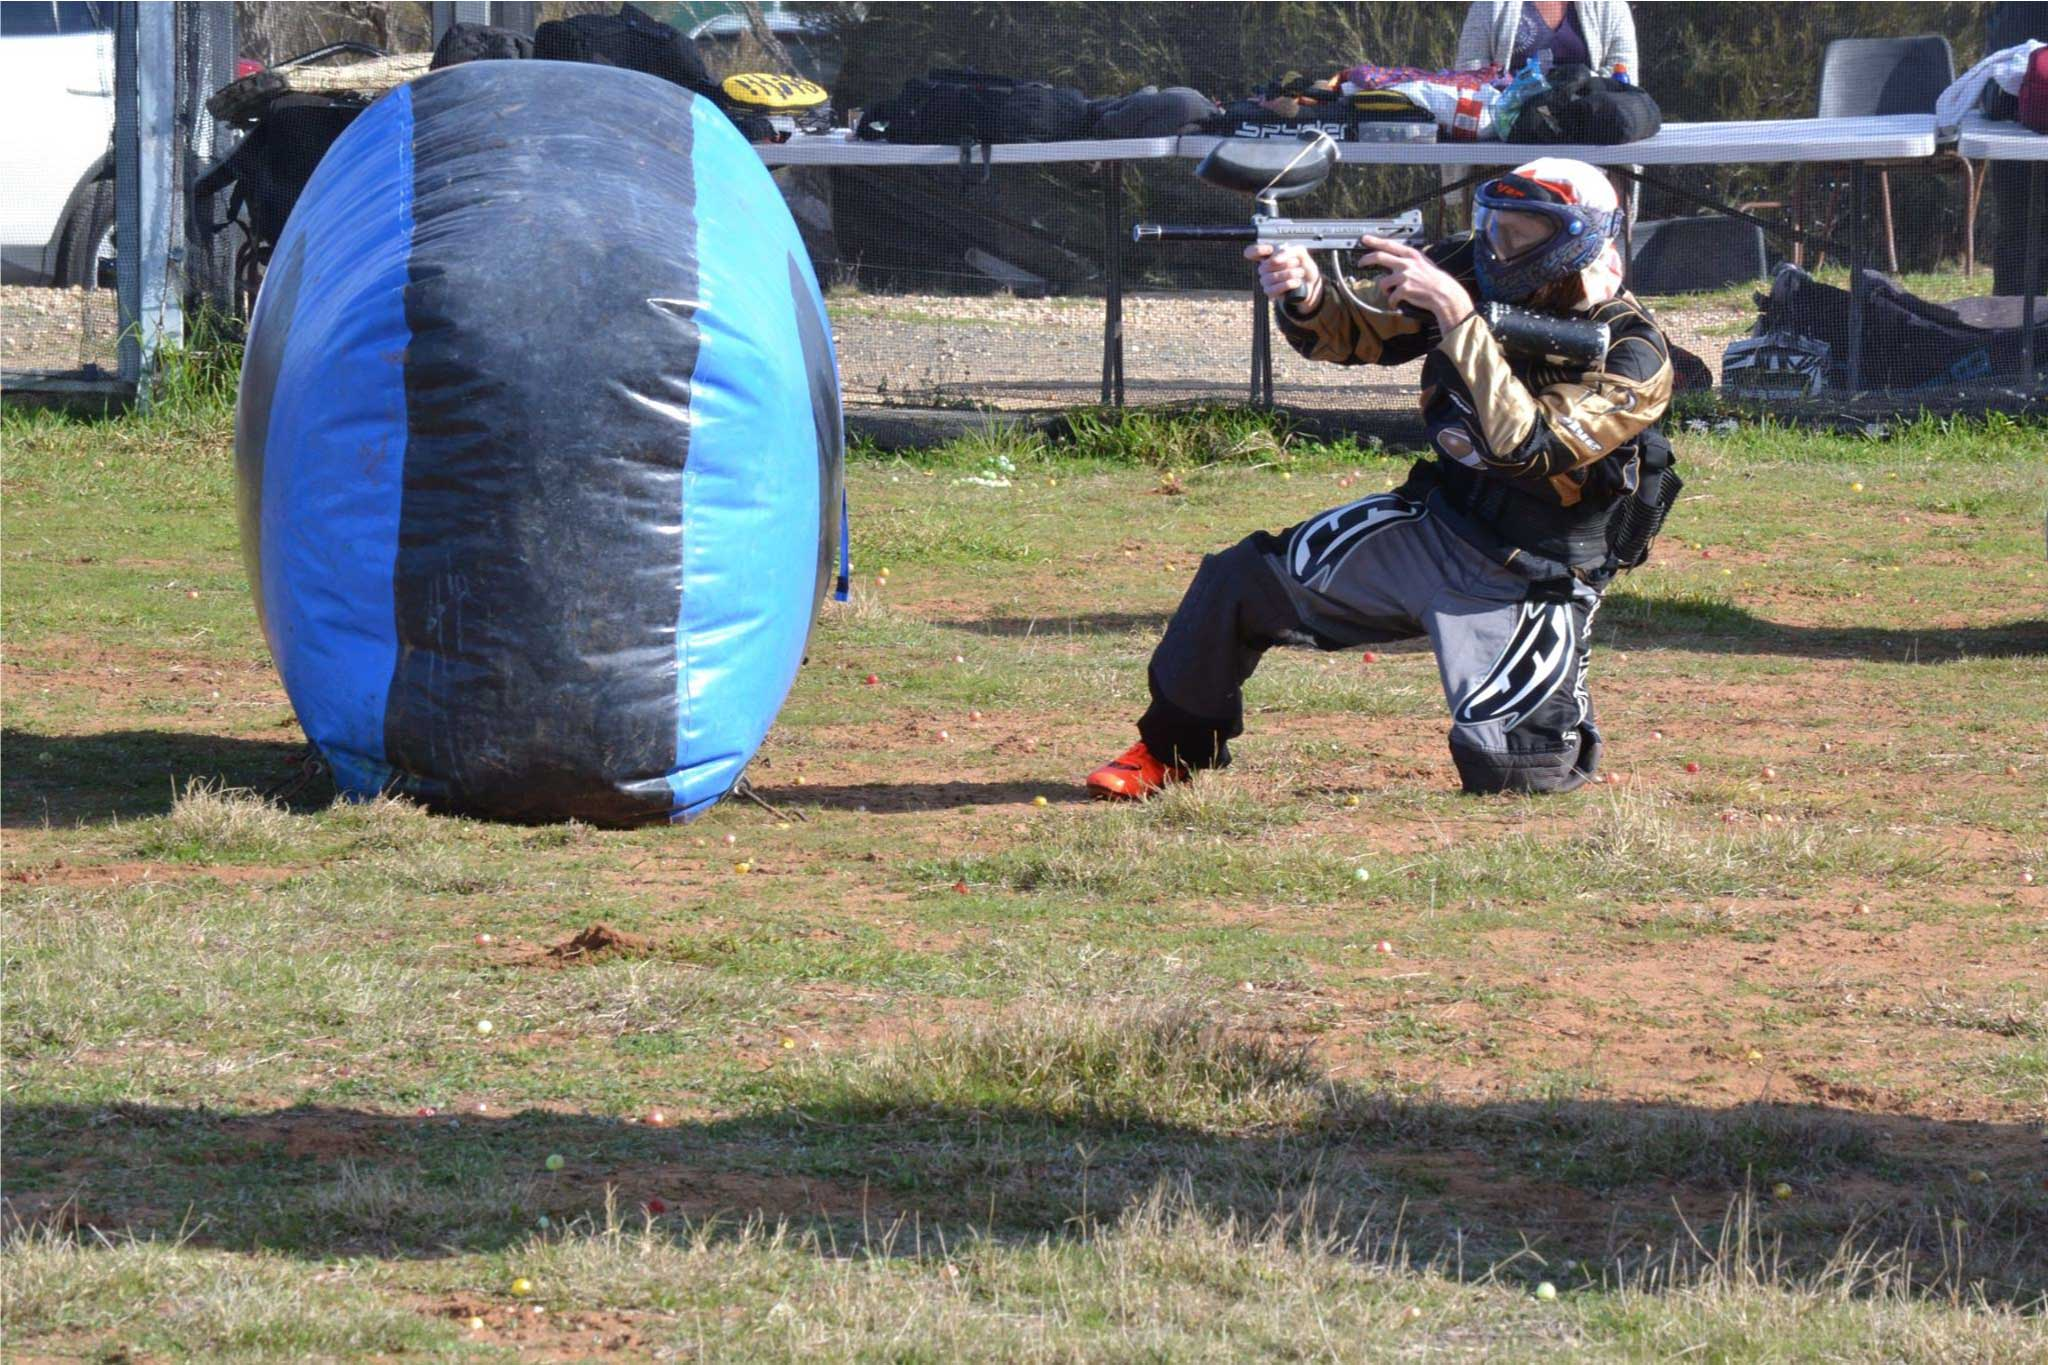 Group tournament lets play paintball